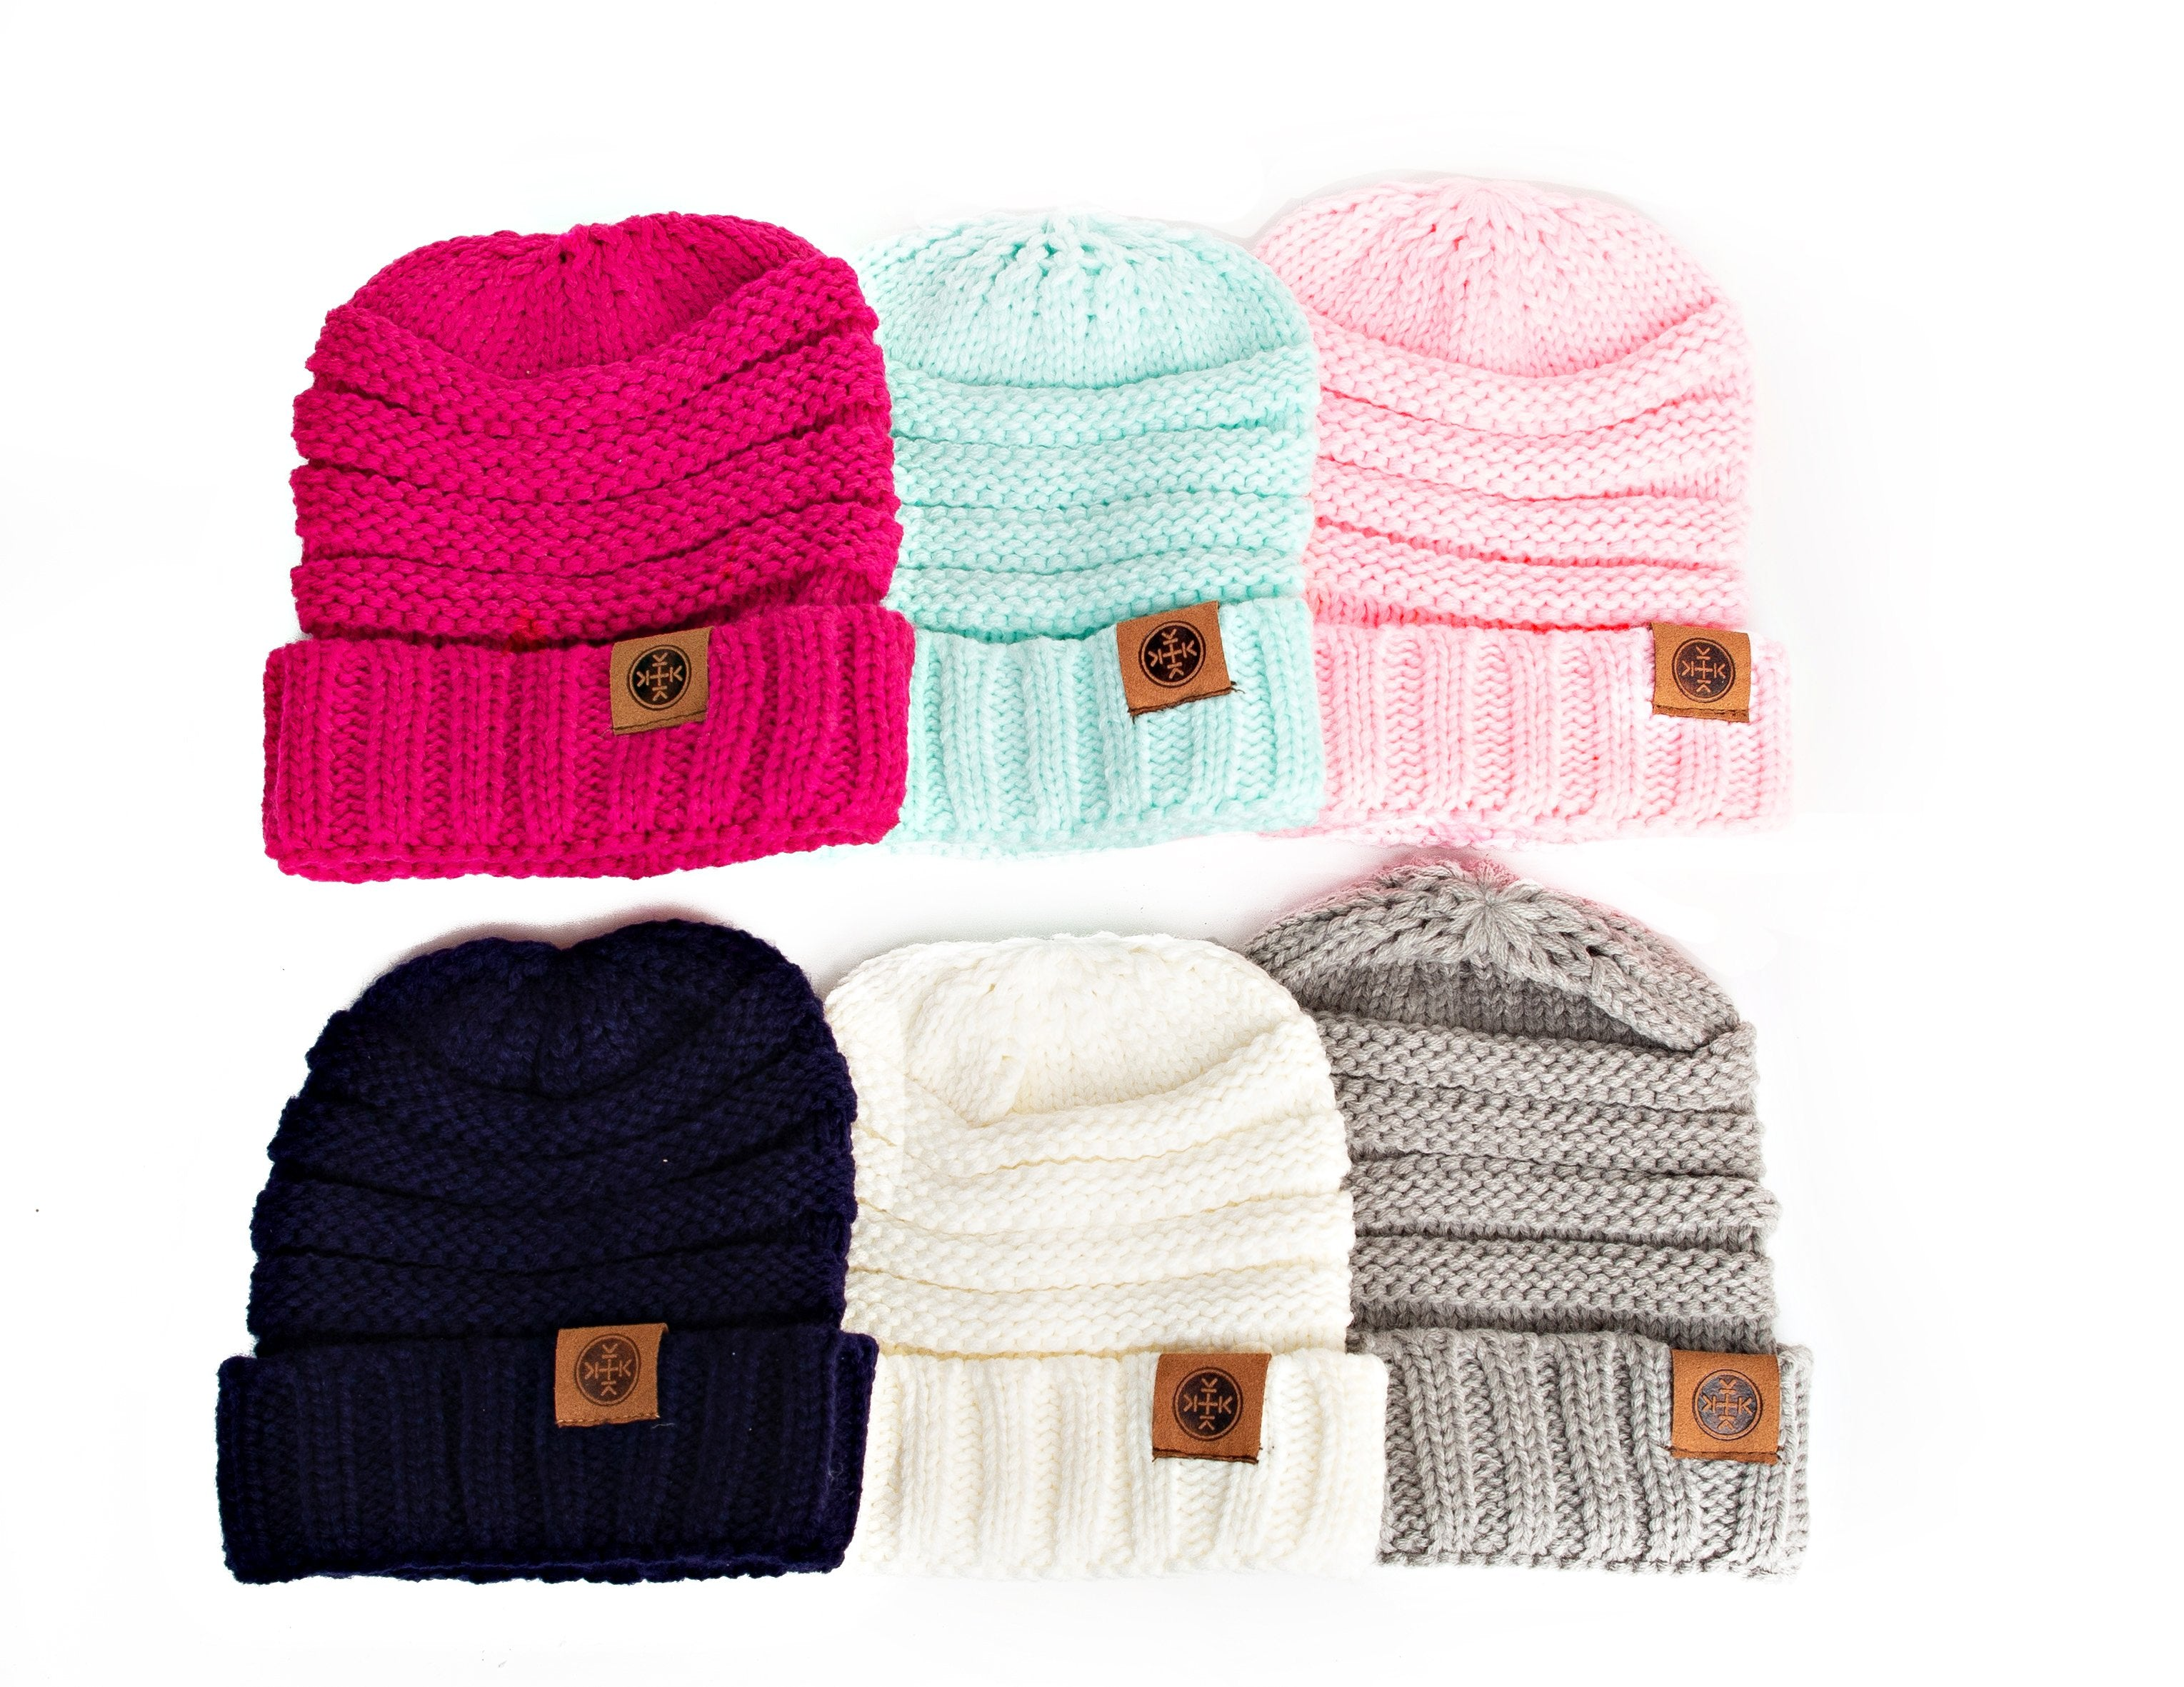 b2de55c99ef0b Non-Personalized Kids Beanie Hats - Free Shipping - Qualtry